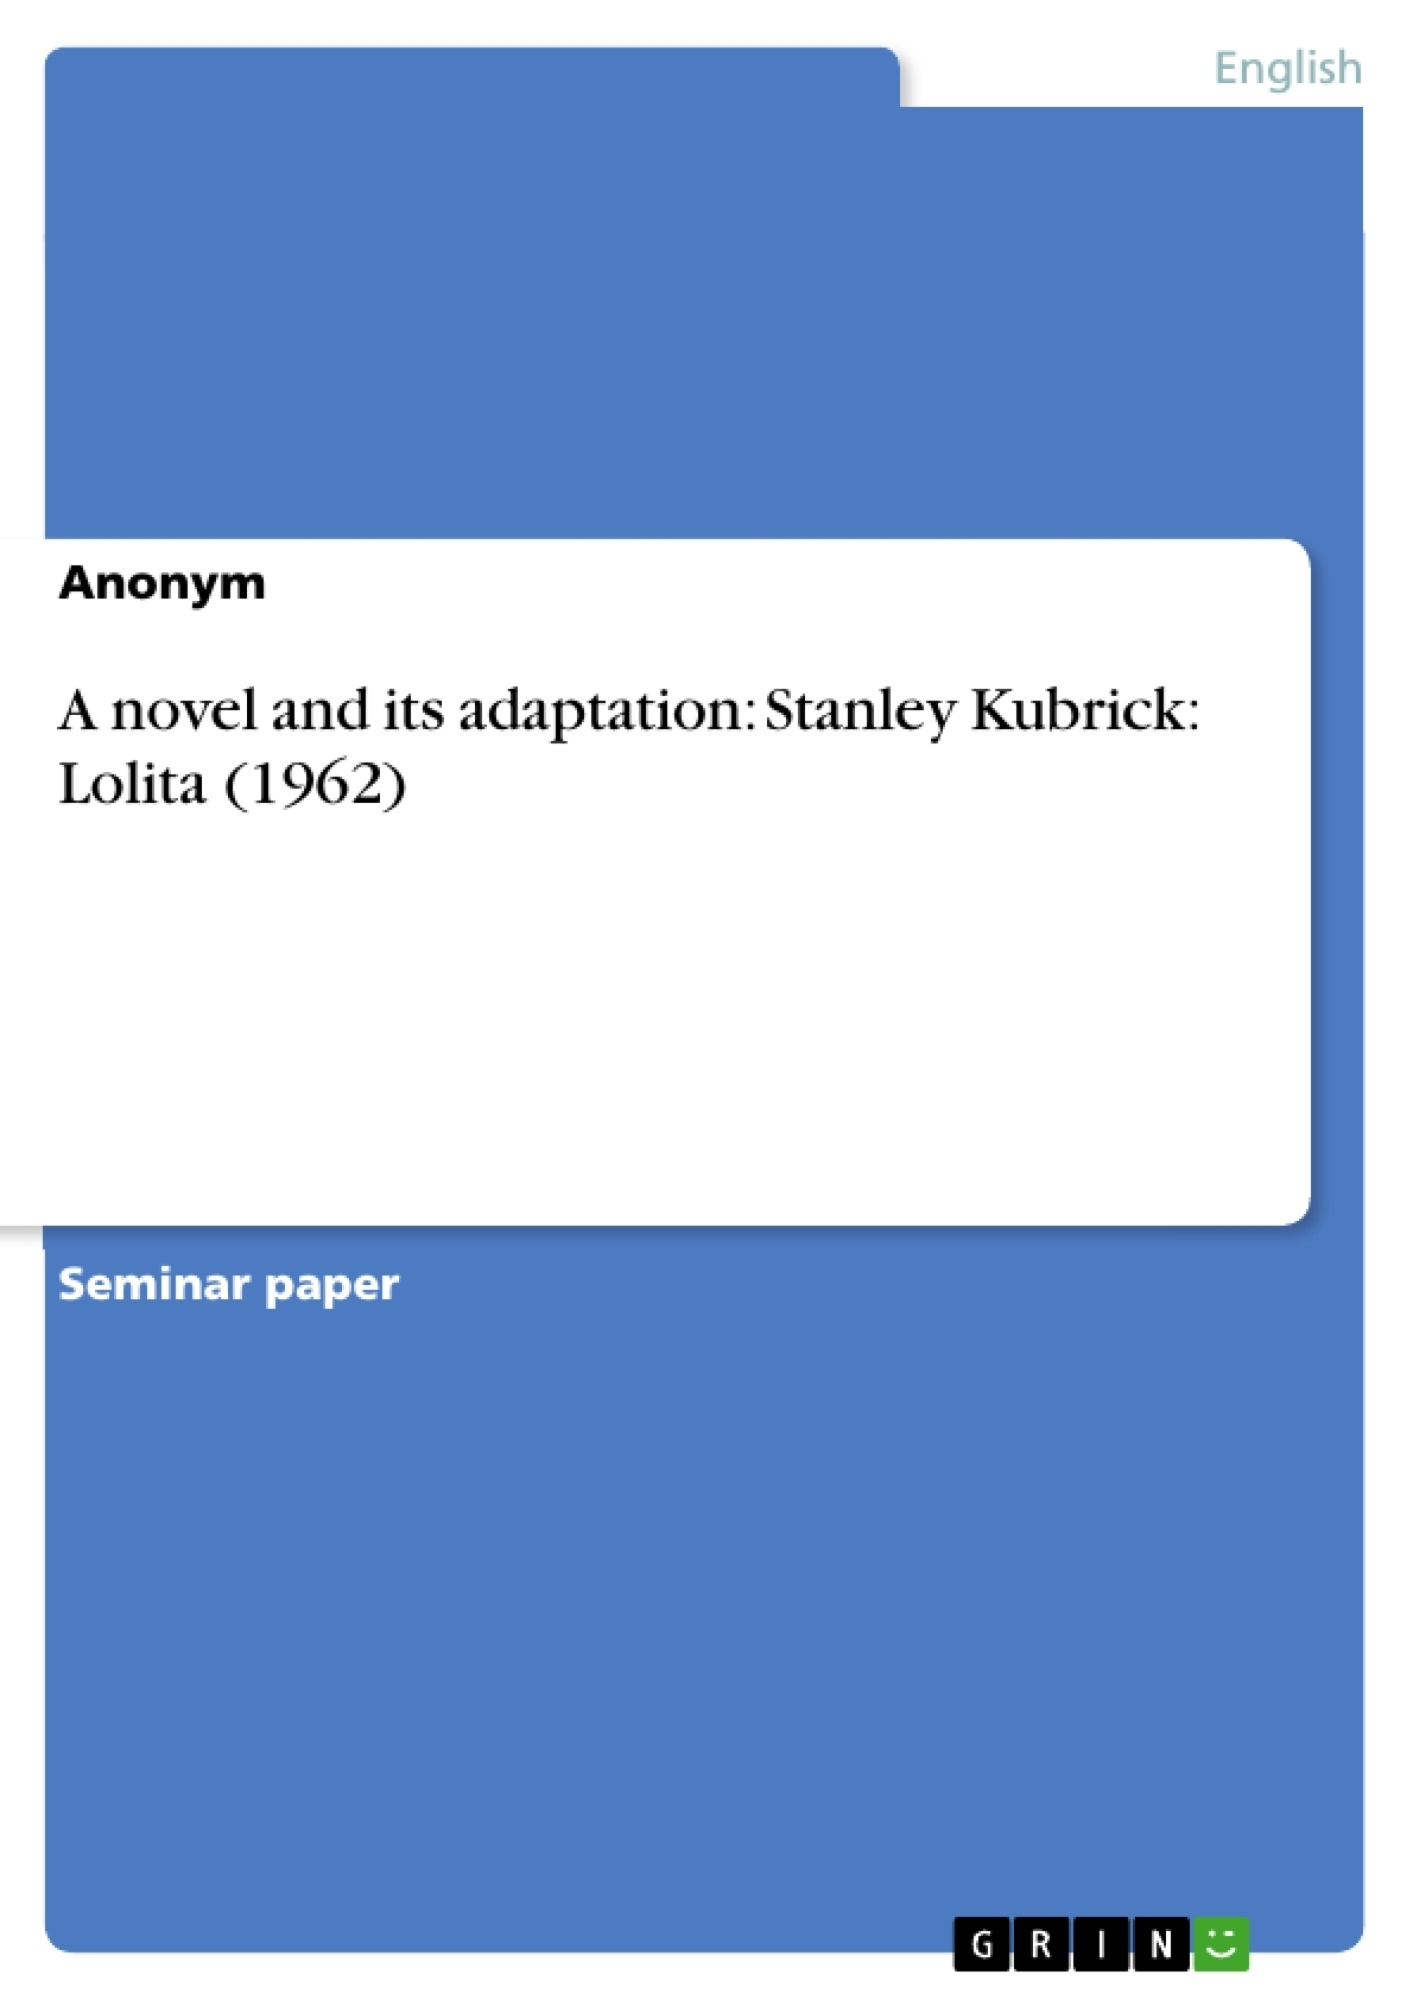 Title: A novel and its adaptation: Stanley Kubrick: Lolita (1962)